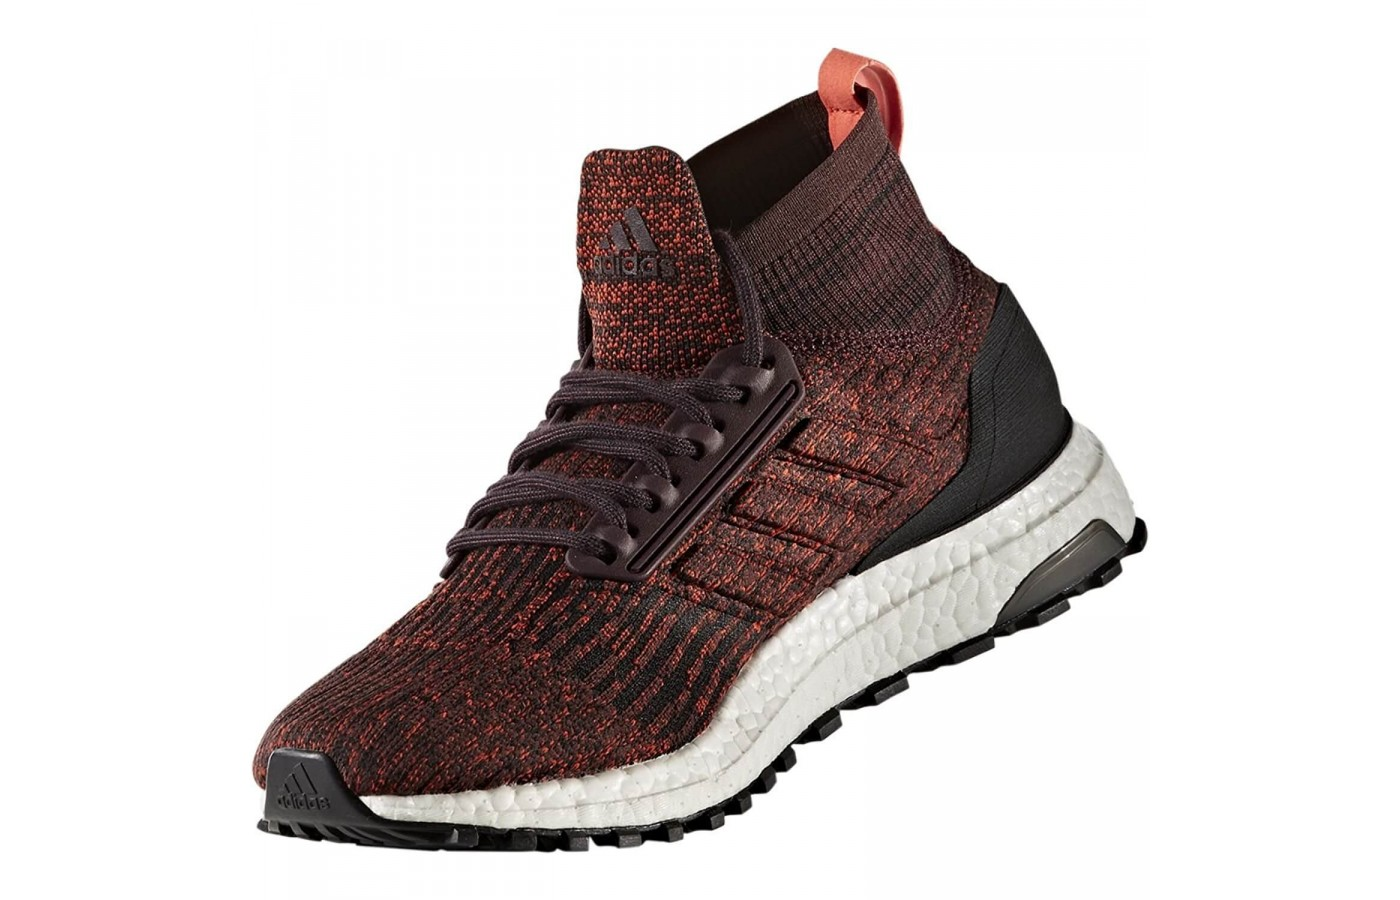 07f66f62946 Adidas Ultraboost All Terrain - Buy or Not in May 2019